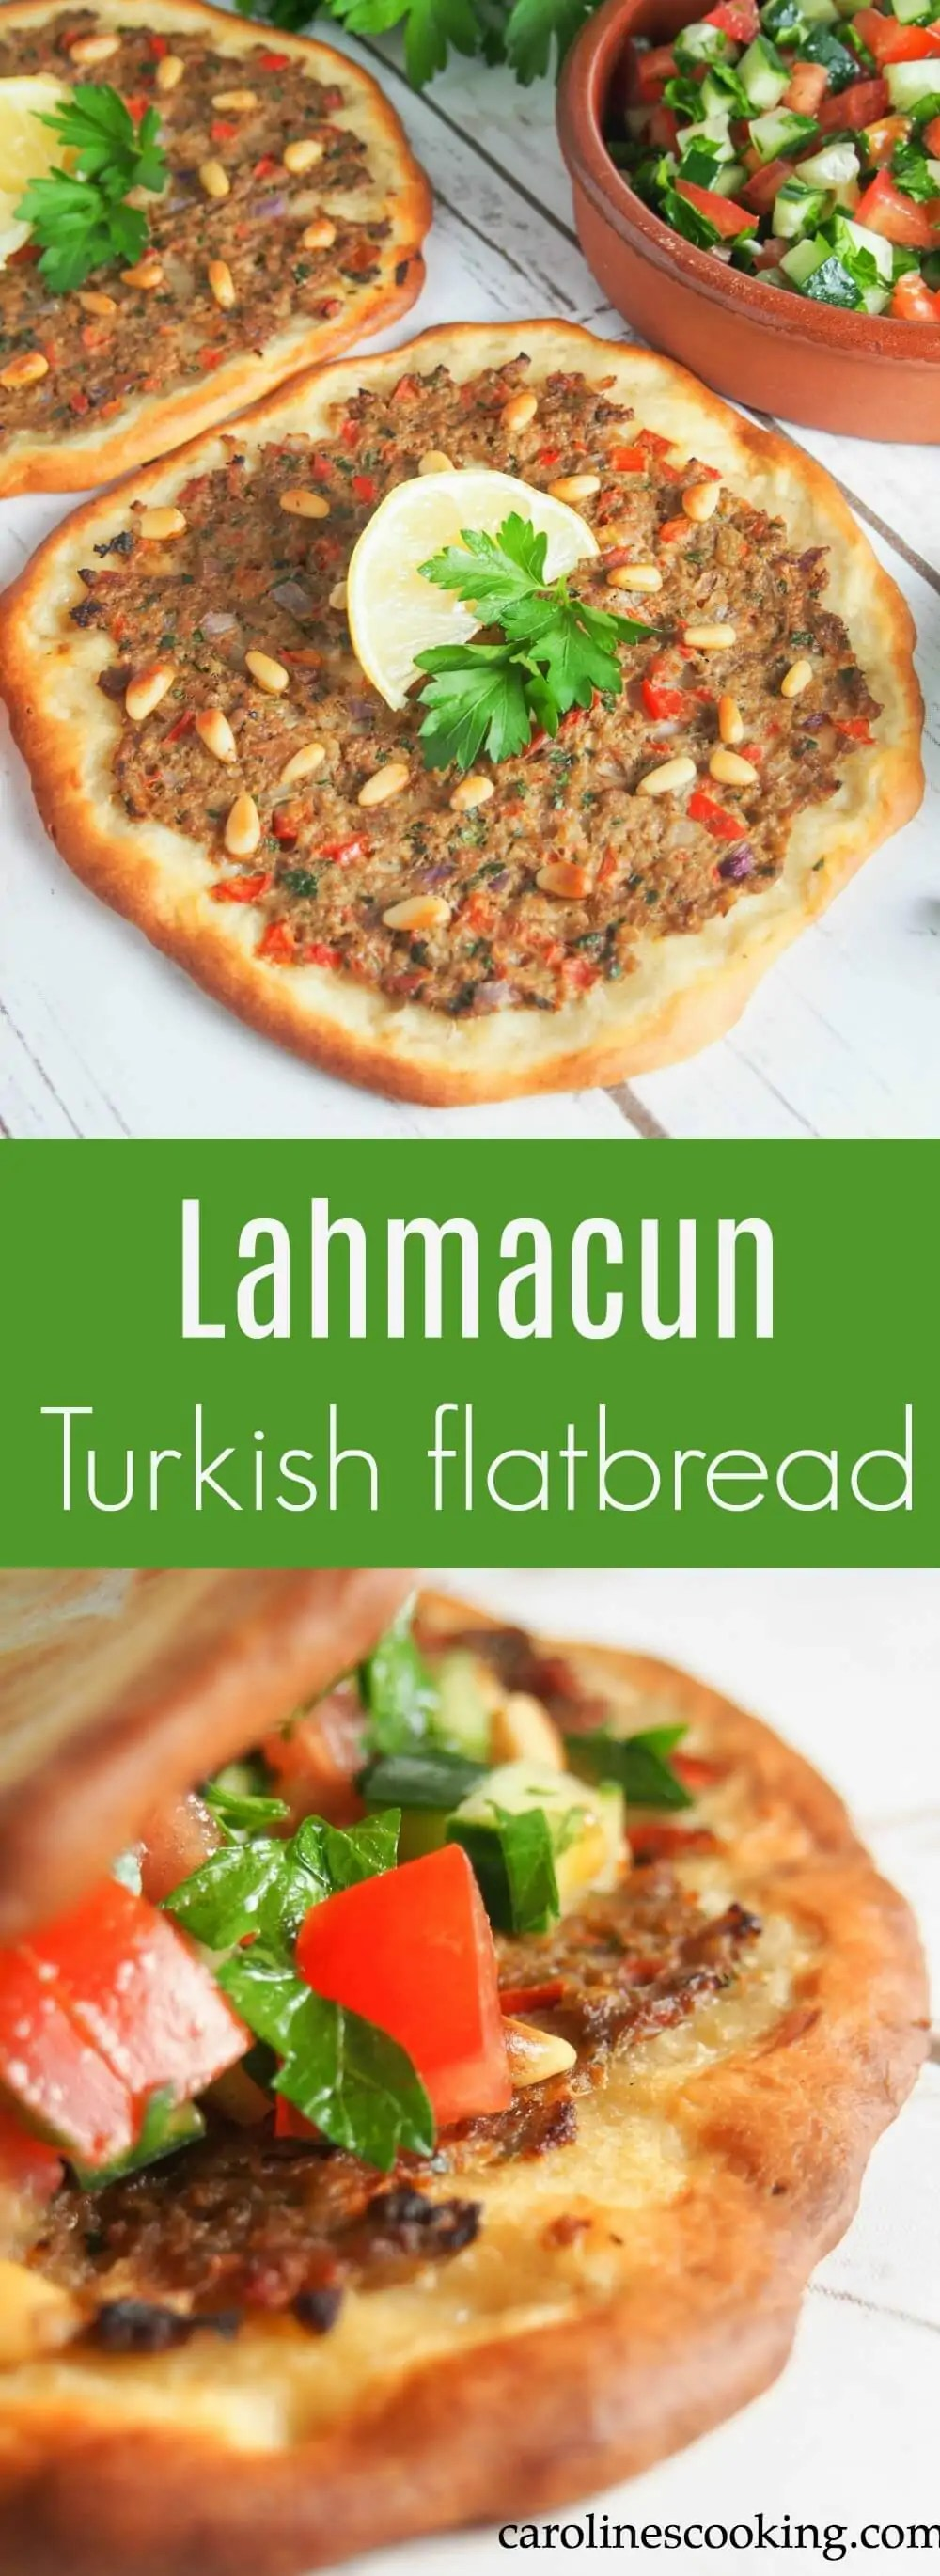 Lahmacun or Turkish flatbread is an easy and delicious dish - a thin base topped with a deliciously seasoned meaty topping. Perfect finger food. #Turkish #flatbread #pizza